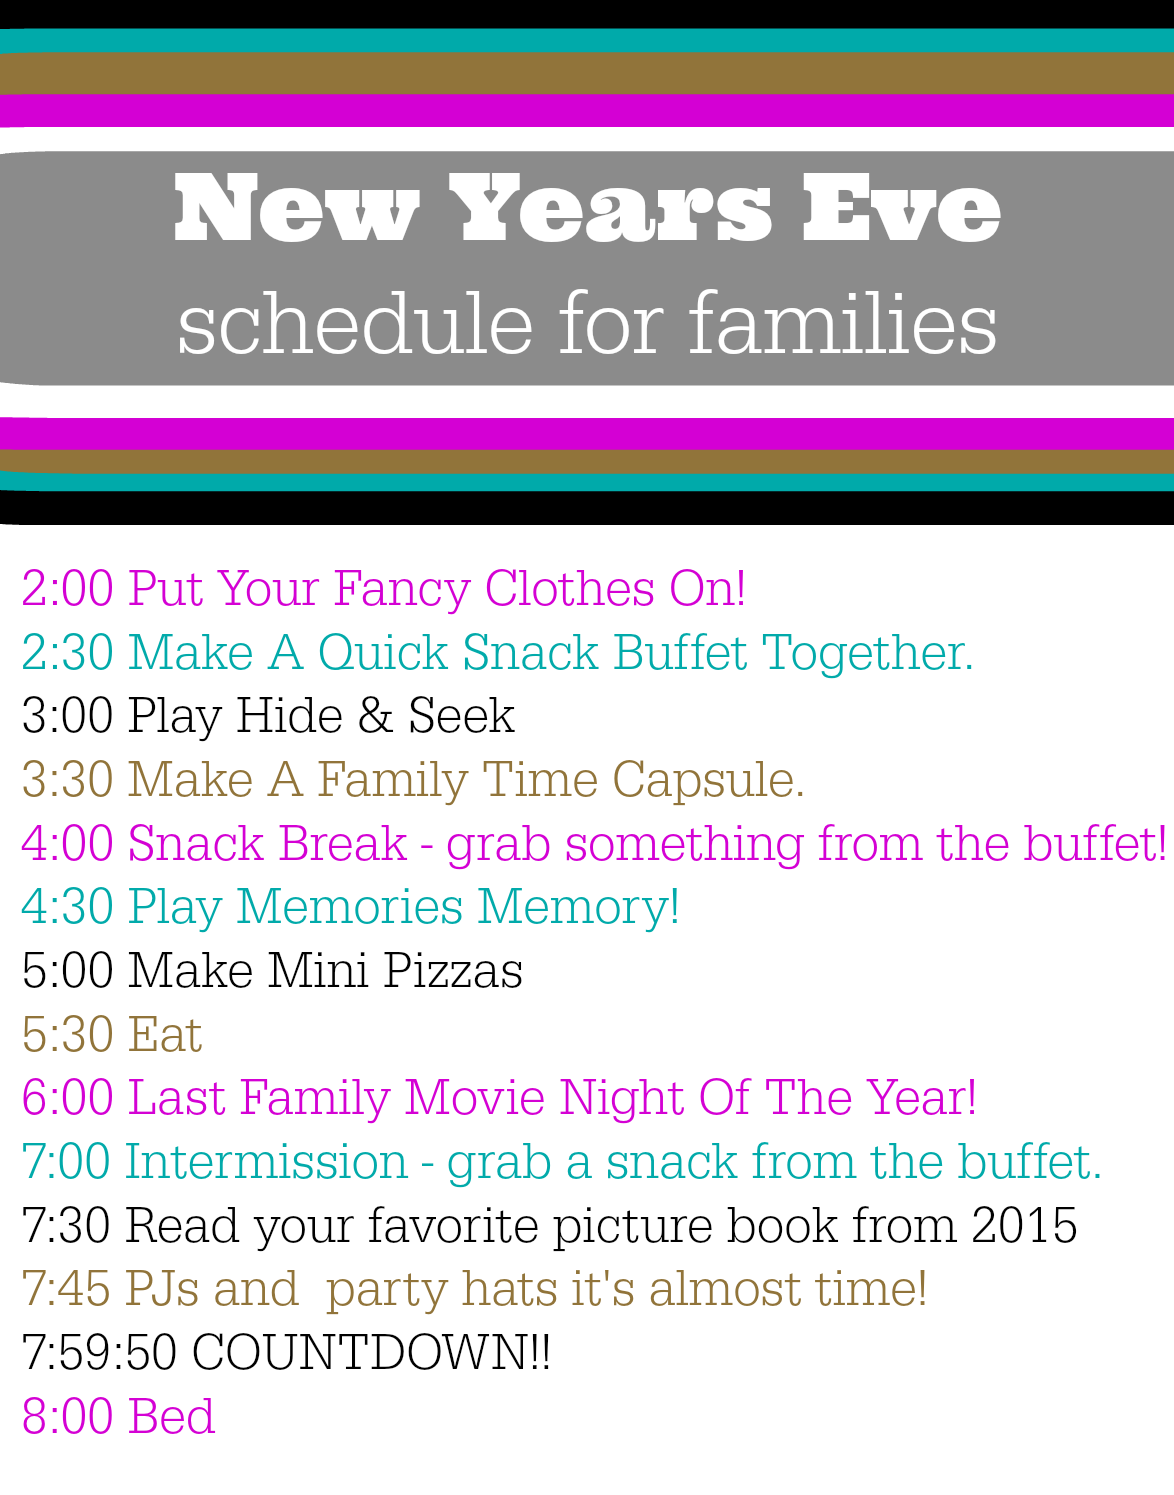 New Years Eve Schedule Free Printable New year's eve